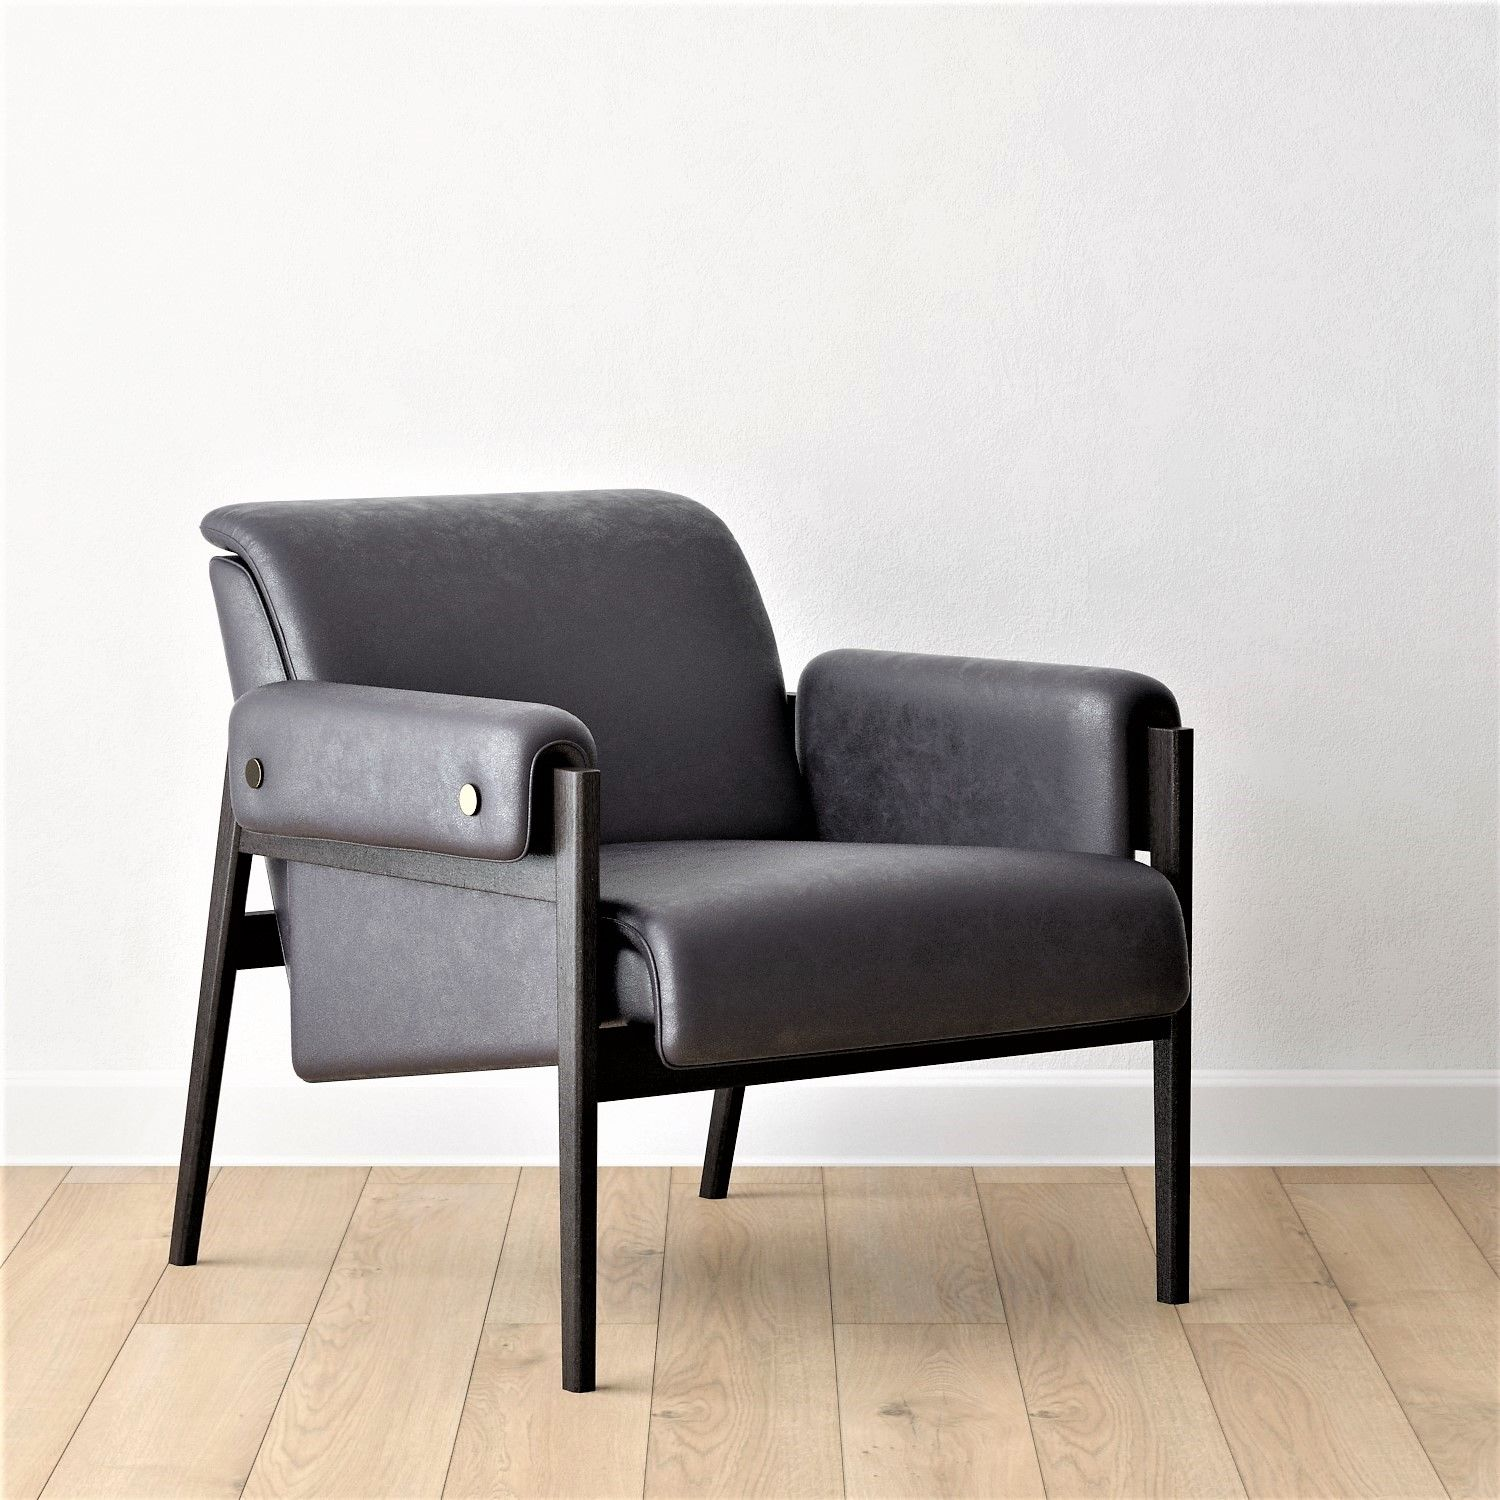 Super West Elm Stanton Leather Chair In 2019 3D Models Chair Alphanode Cool Chair Designs And Ideas Alphanodeonline